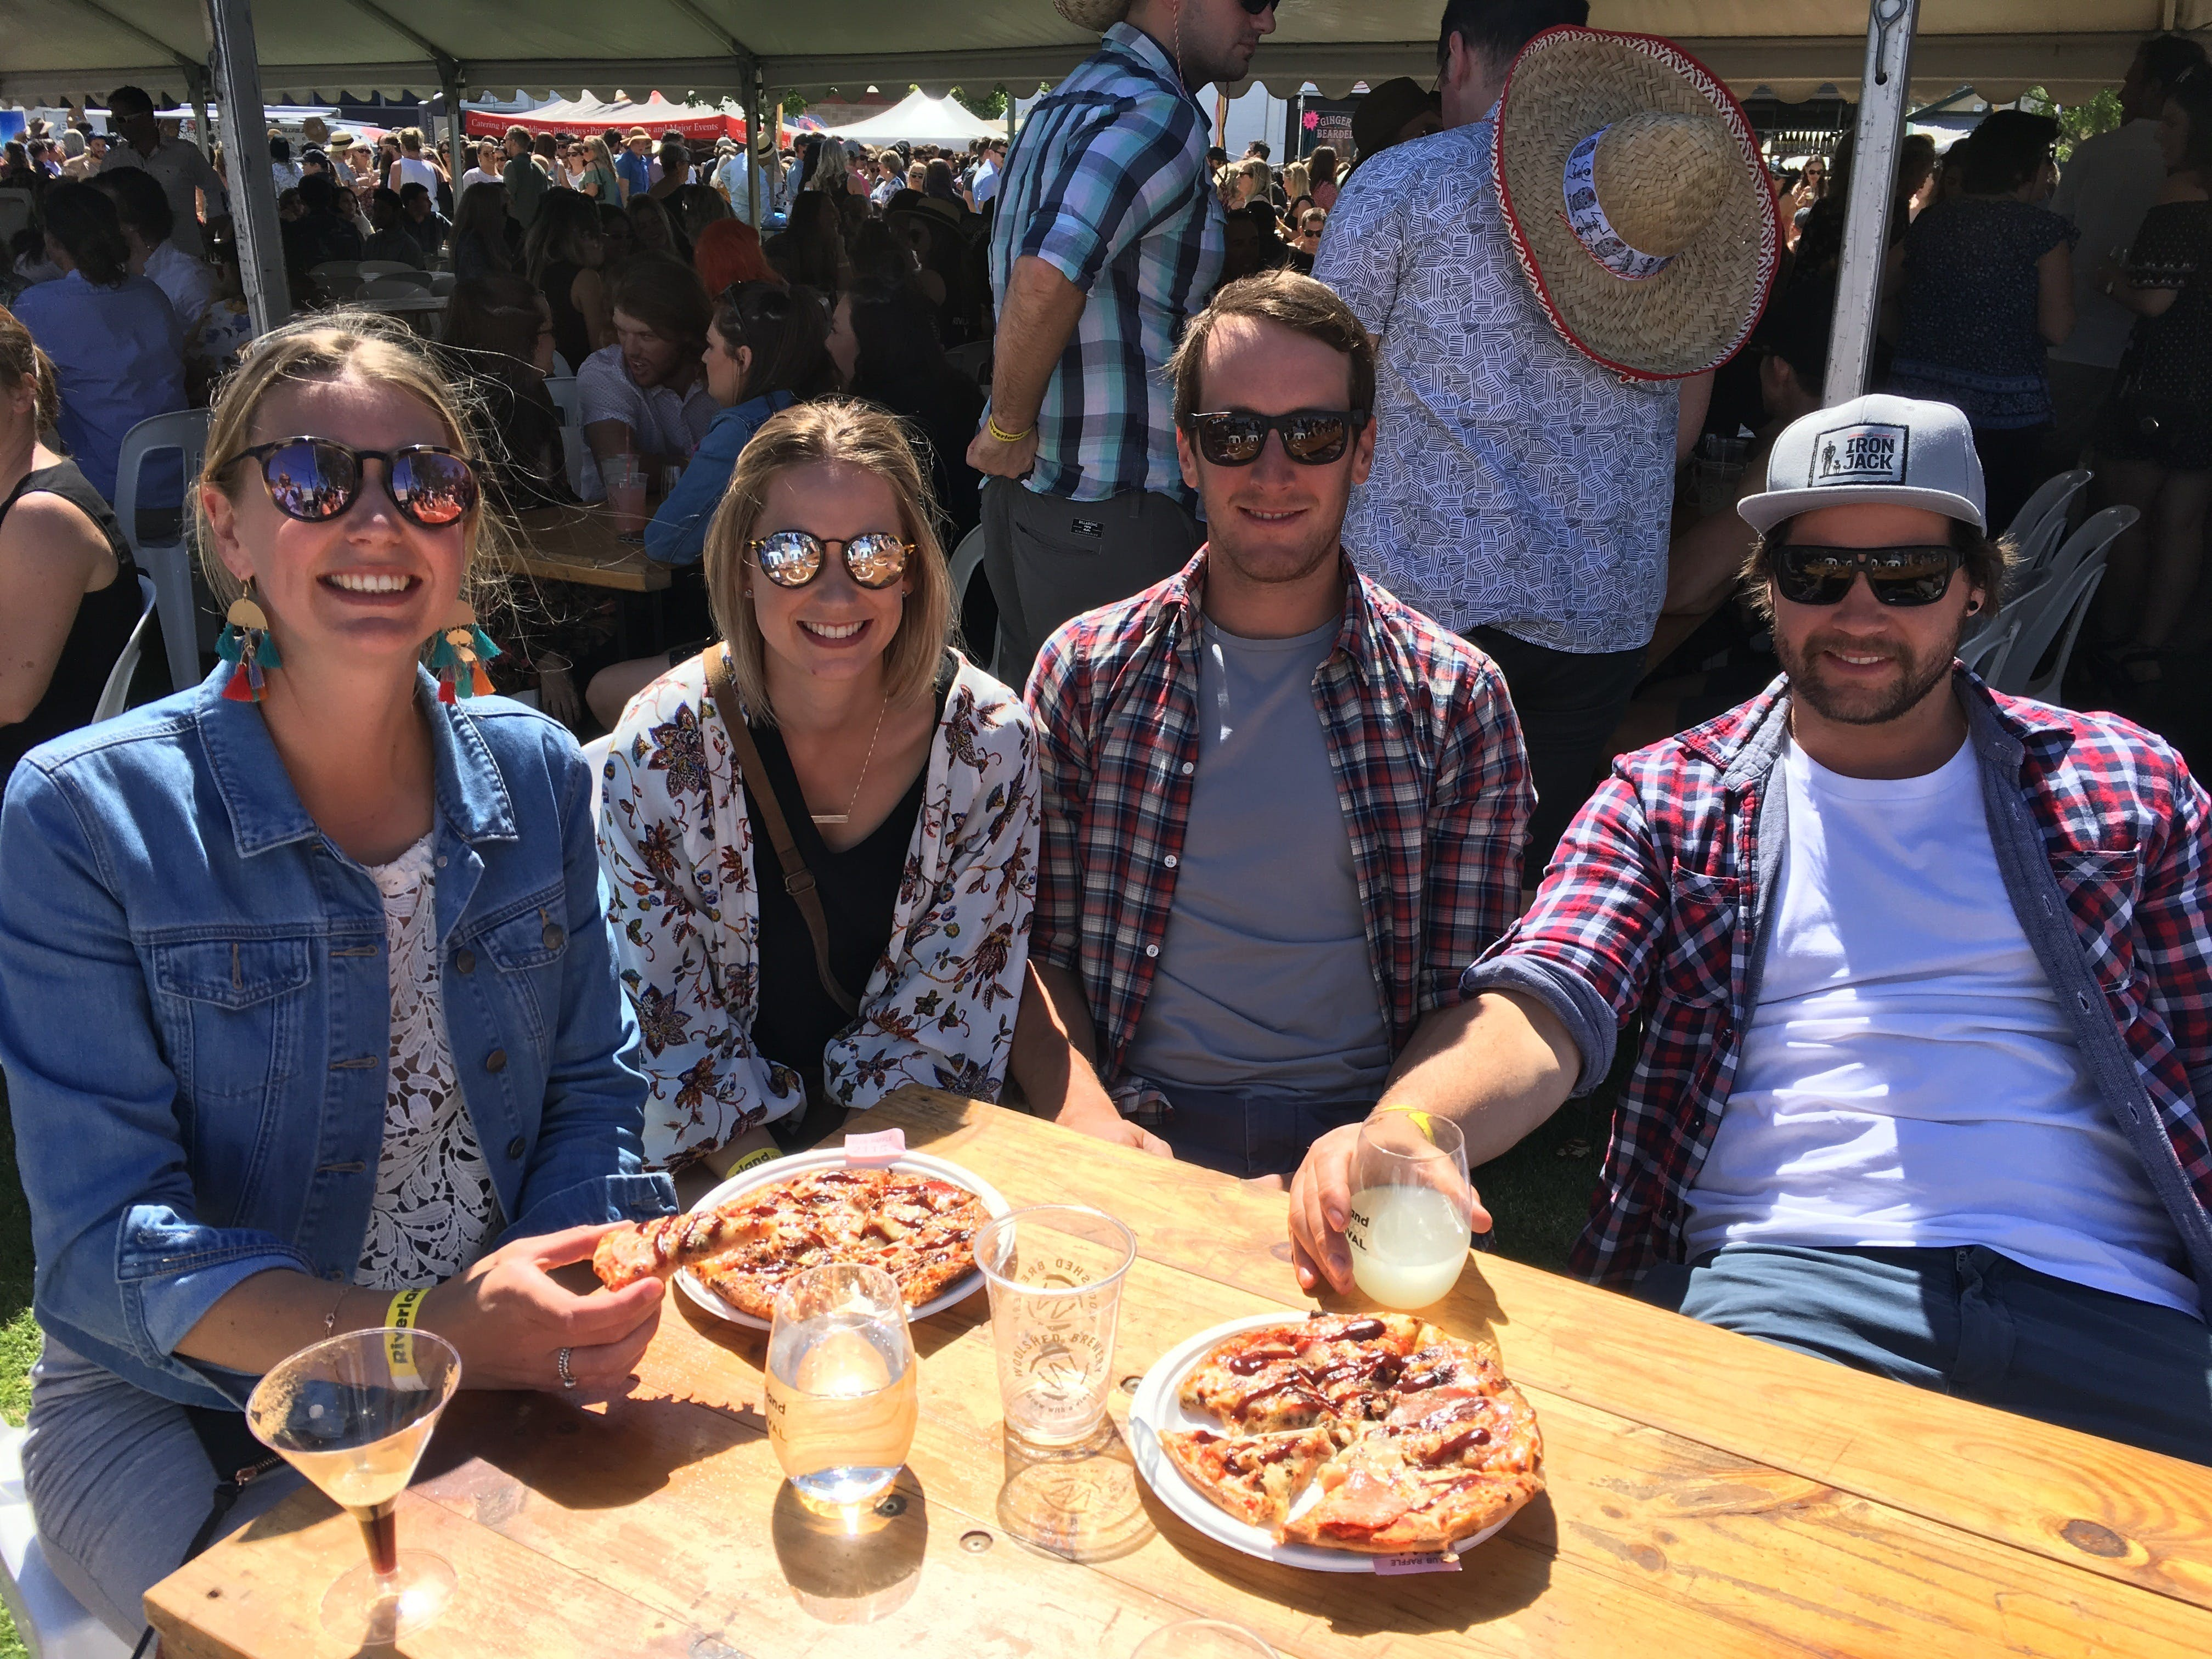 Riverland Wine  Food Festival - Pubs and Clubs